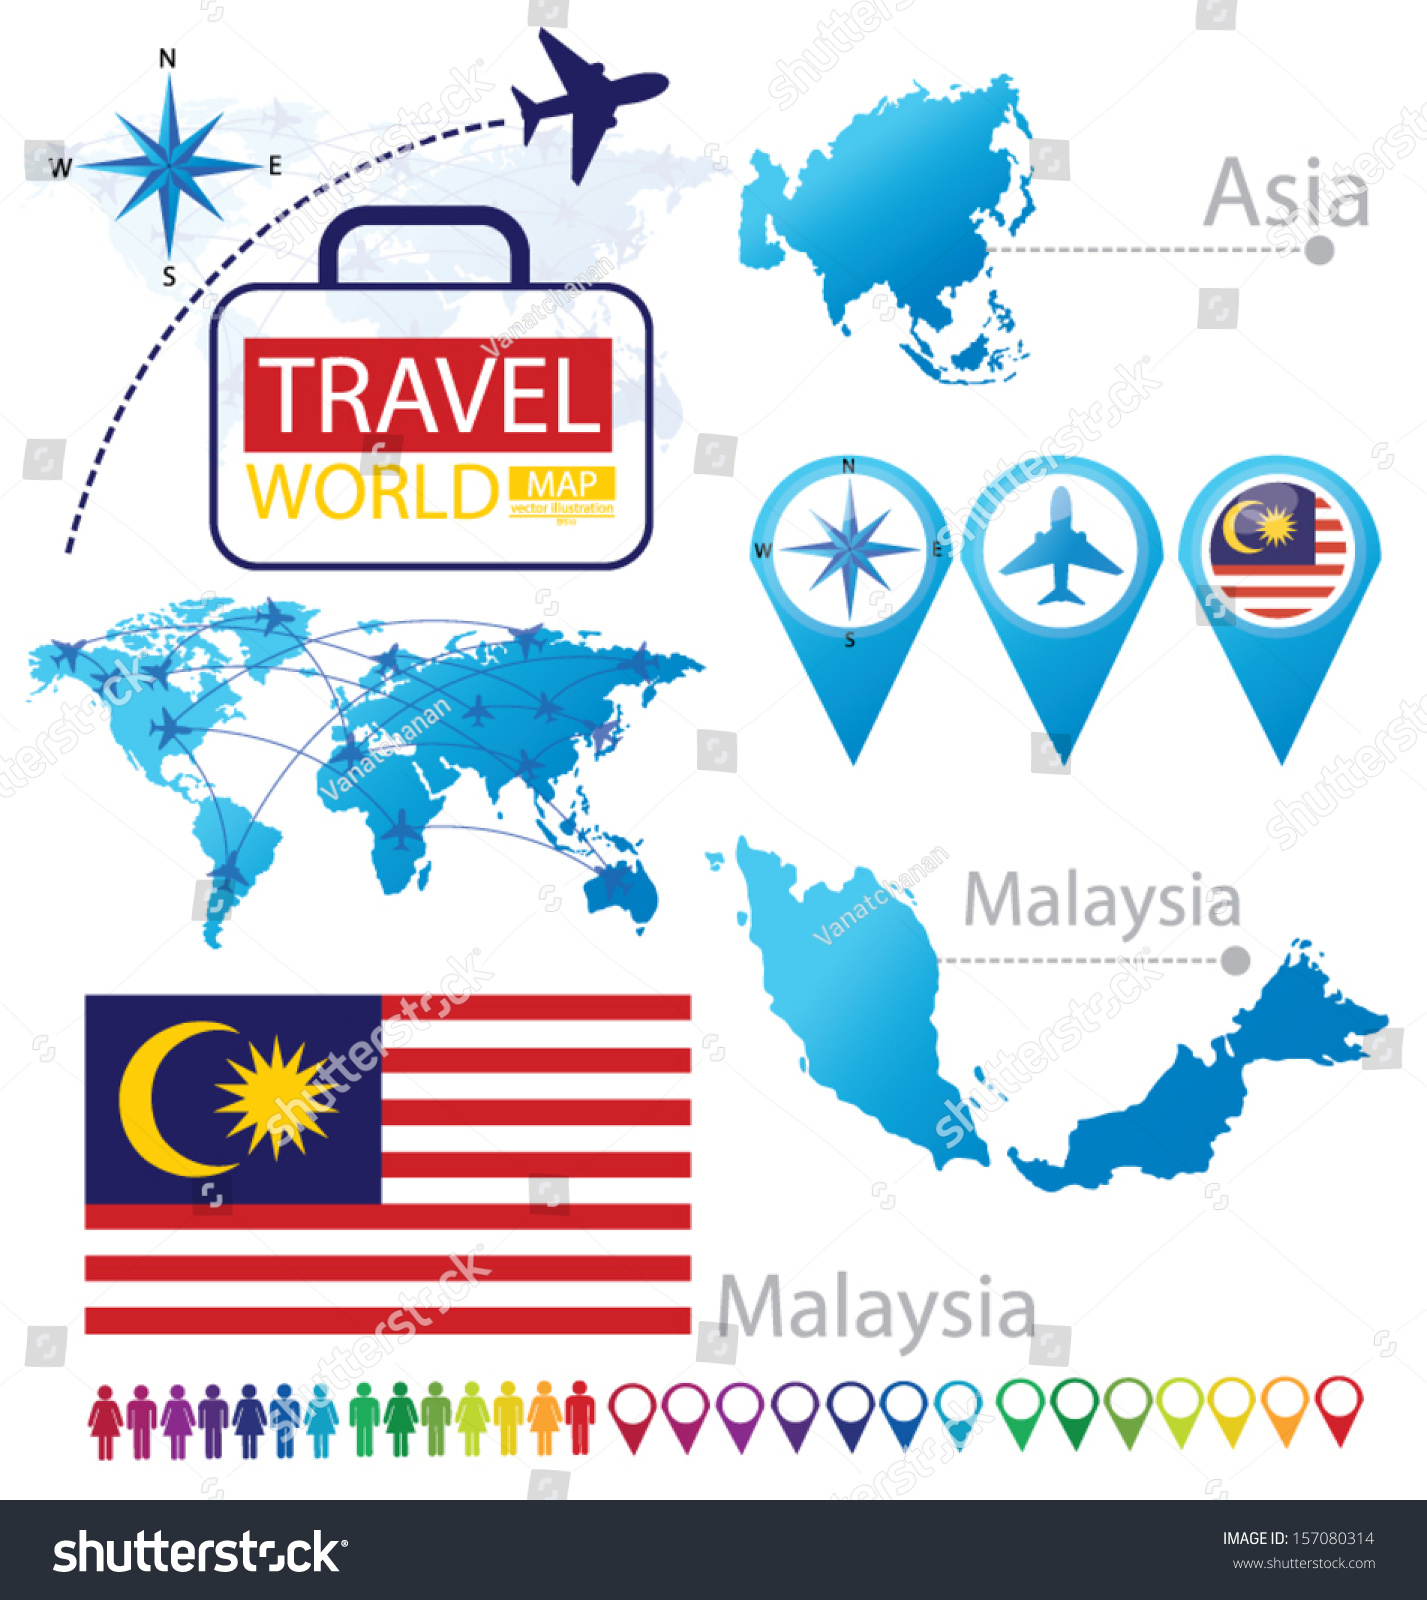 Malaysia flag asia world map travel stock vector 157080314 world map travel vector illustration gumiabroncs Choice Image